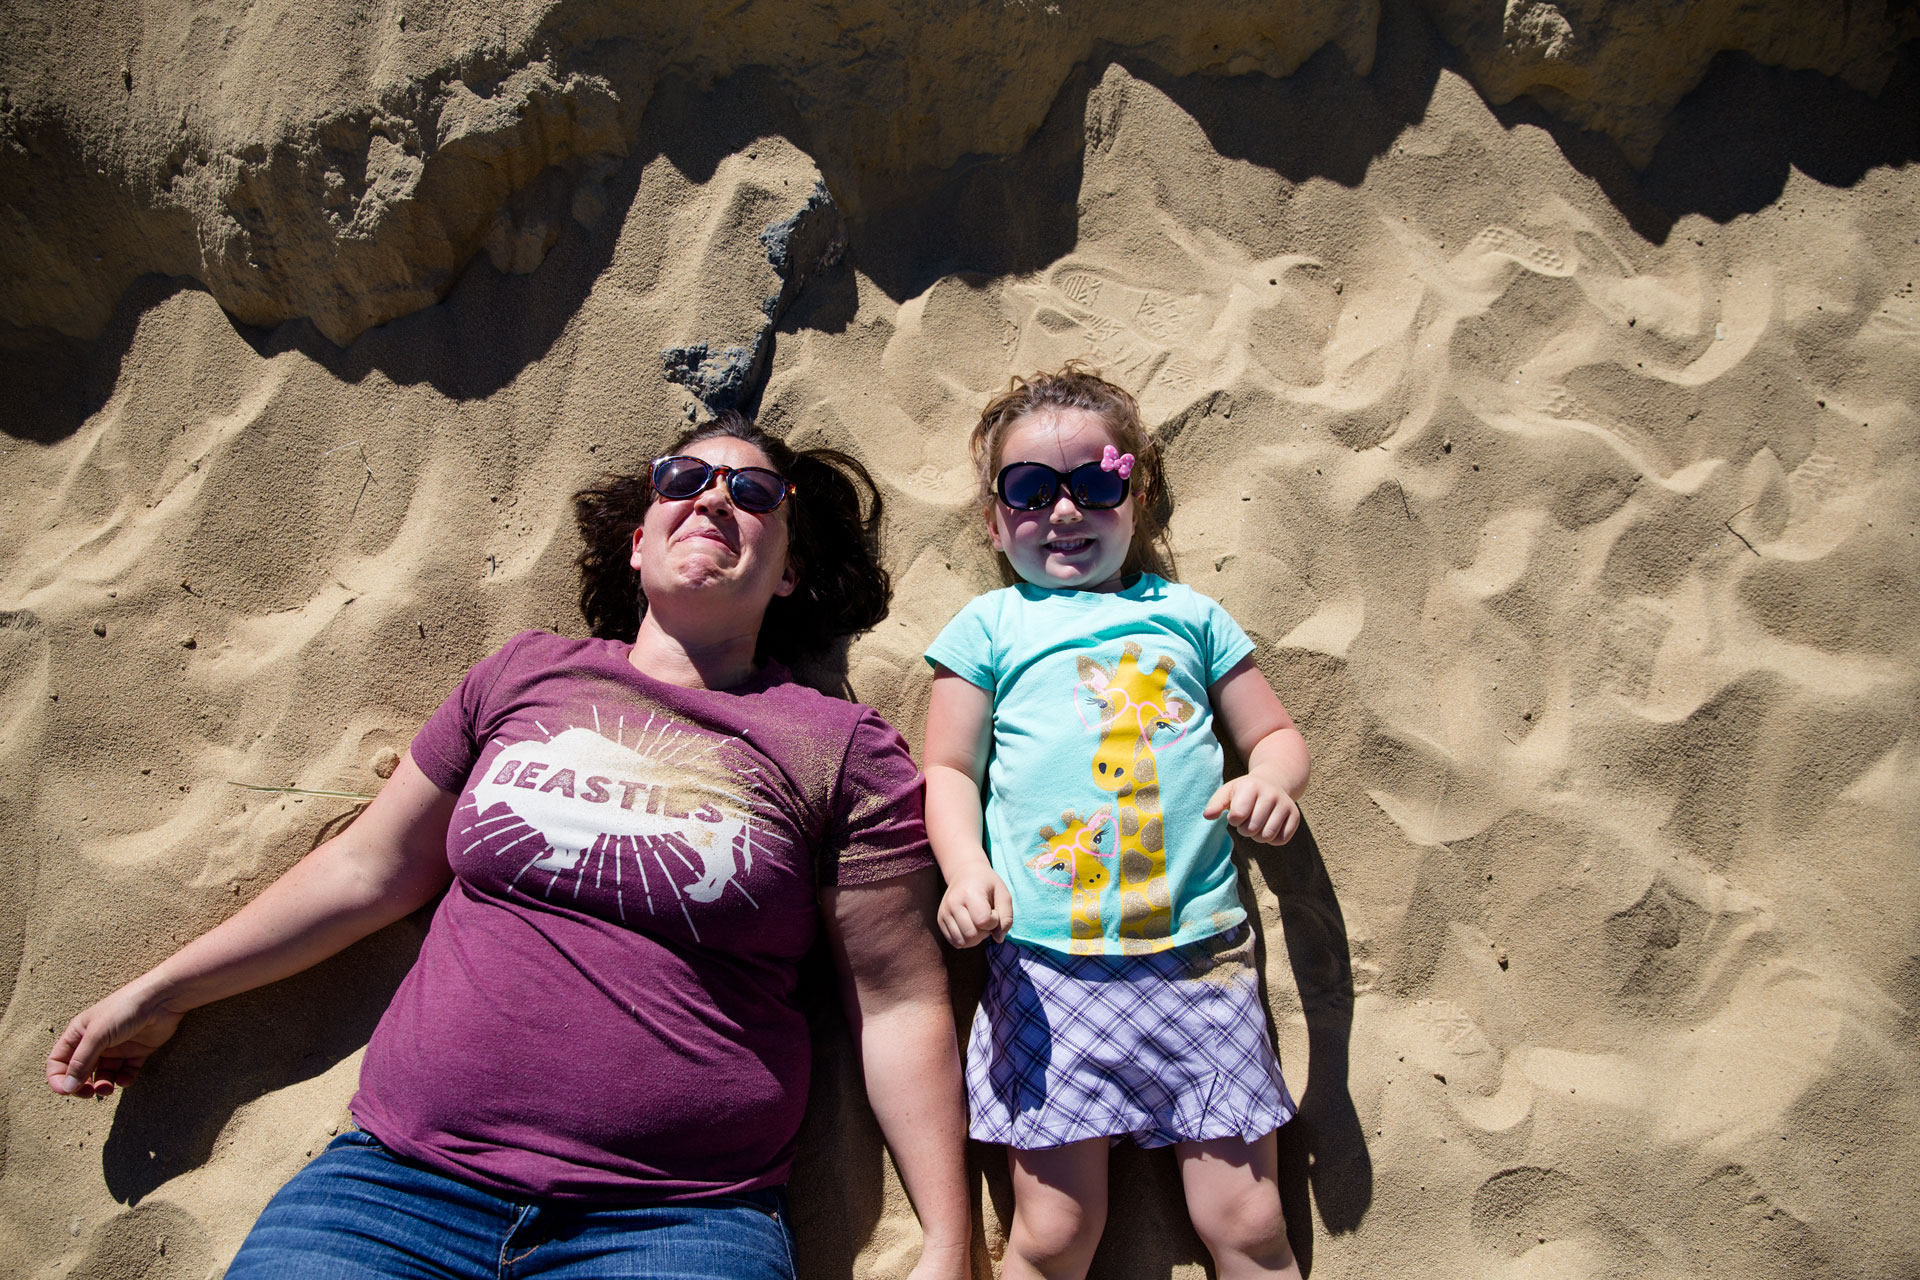 Mom and daughter laying on sand and smiling with sunglasses on